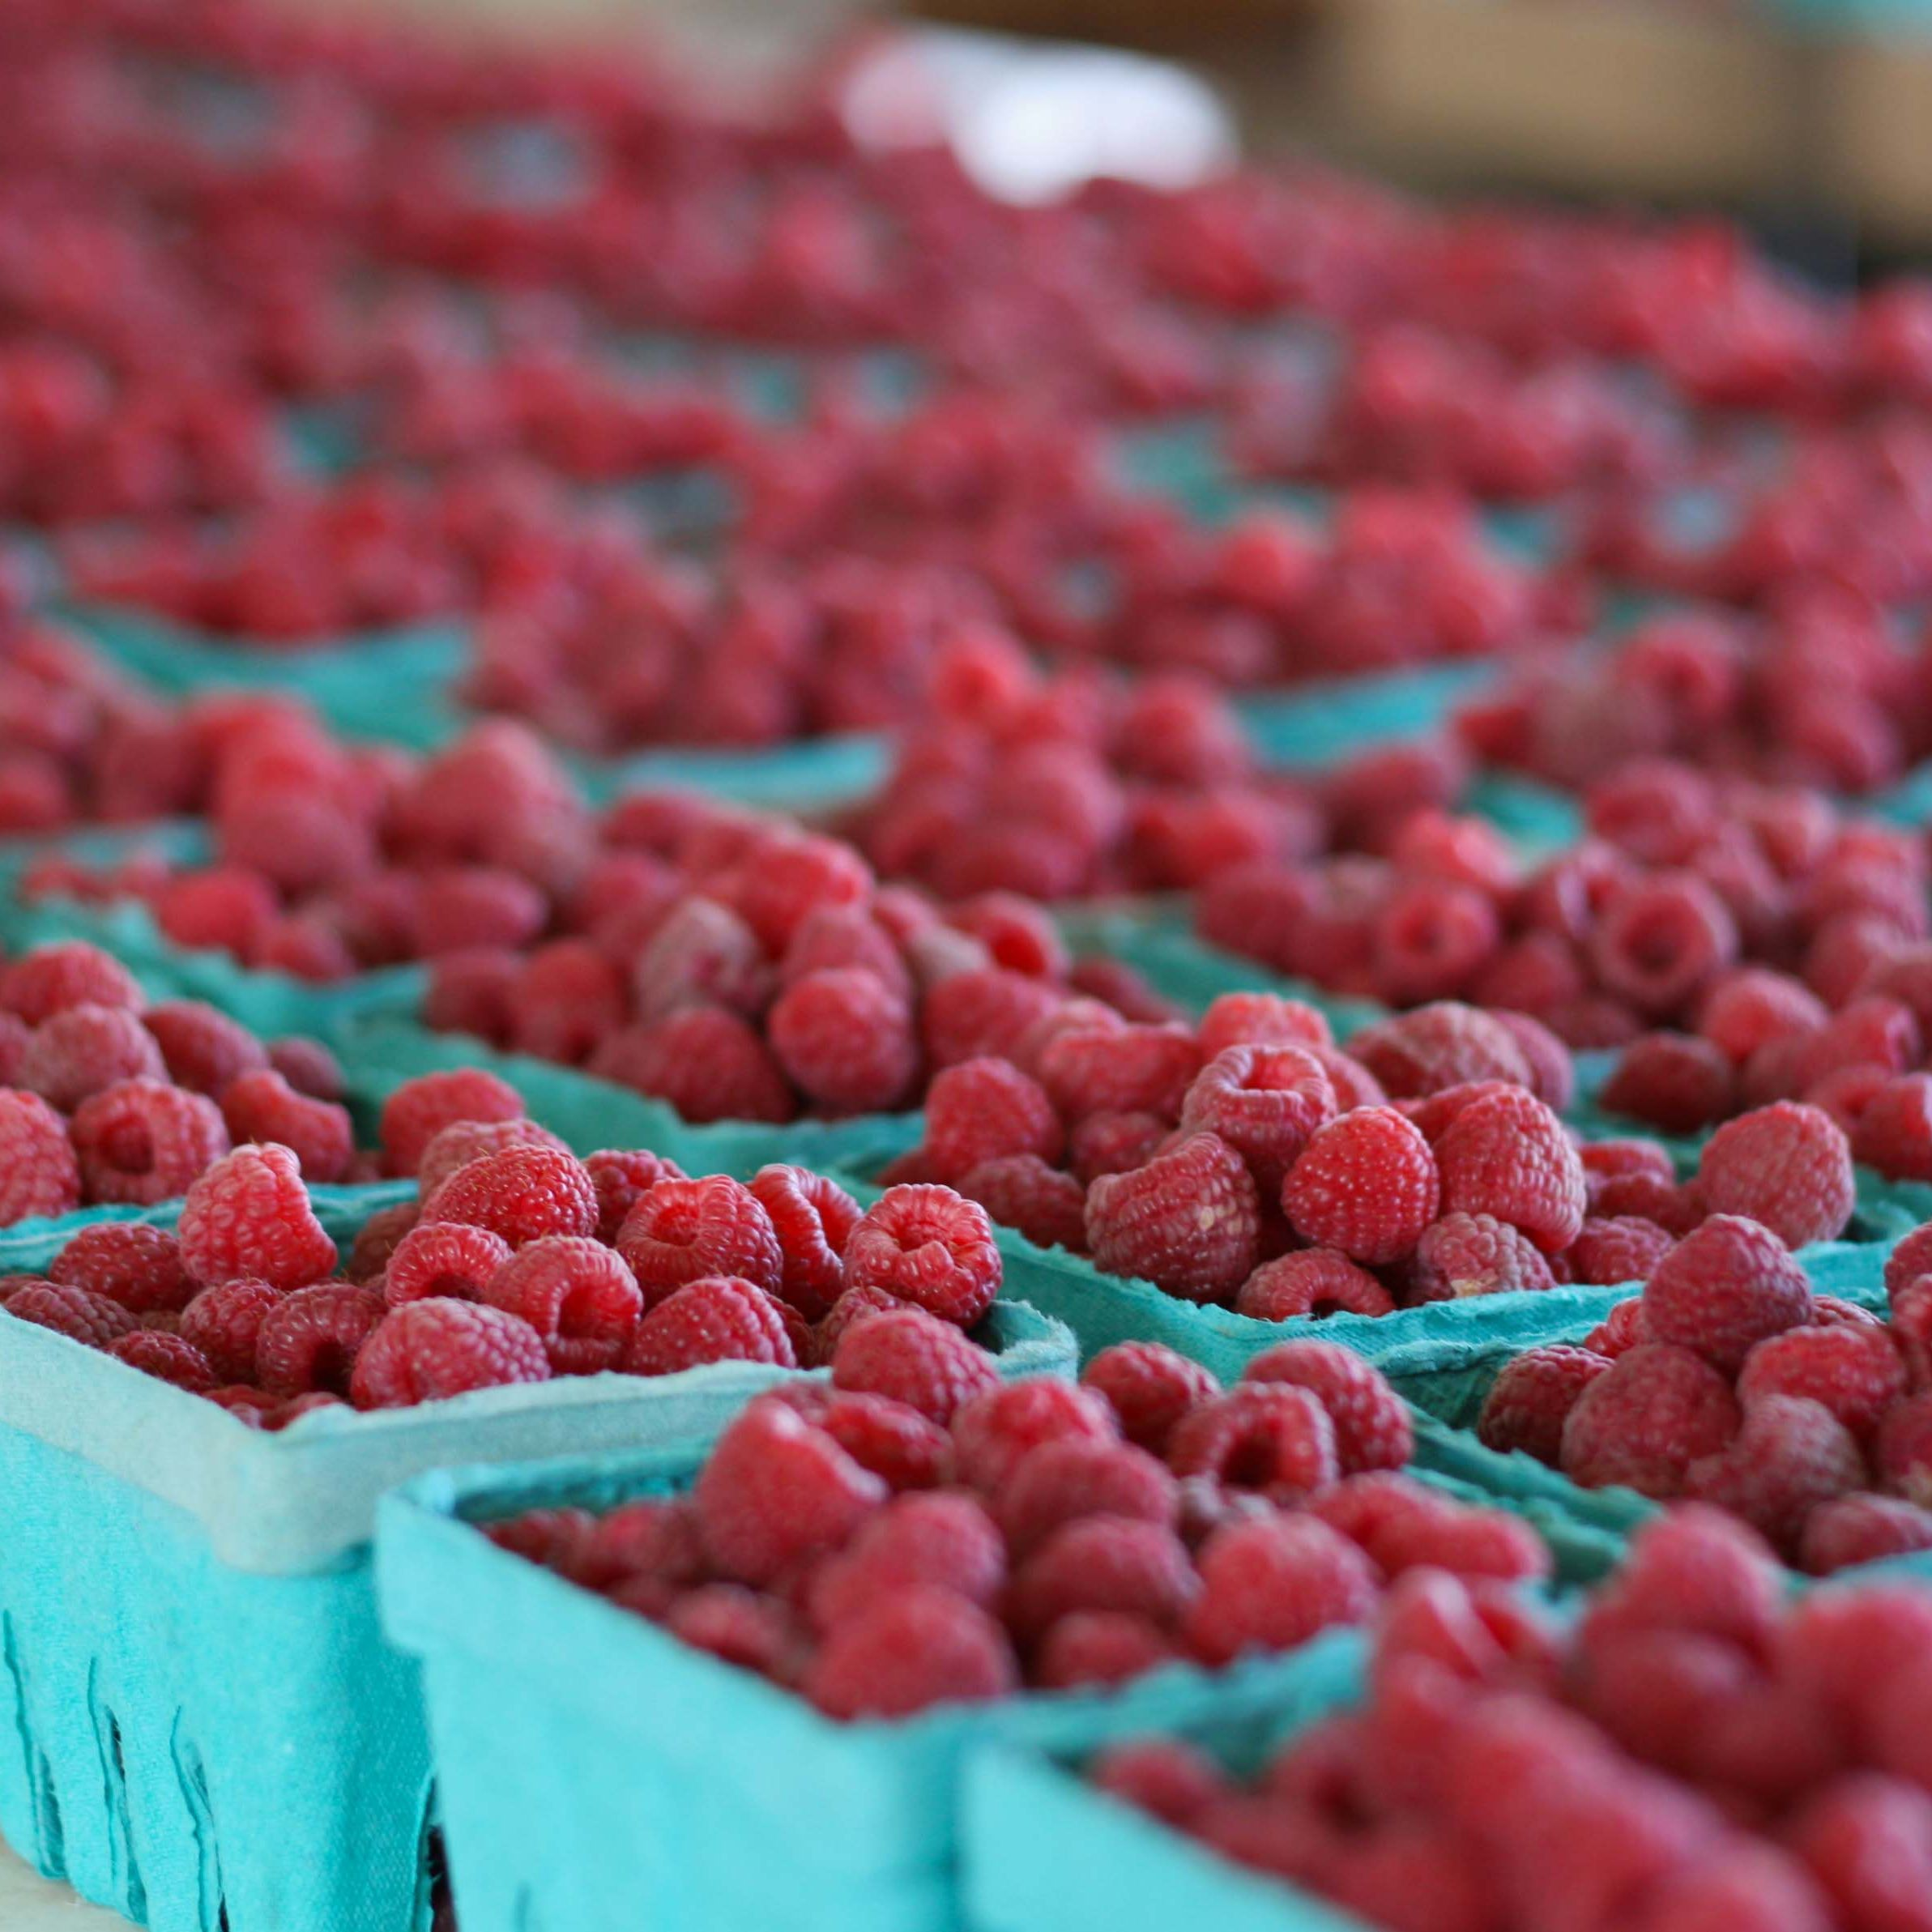 Farmers' Markets in Minneapolis and St. Paul